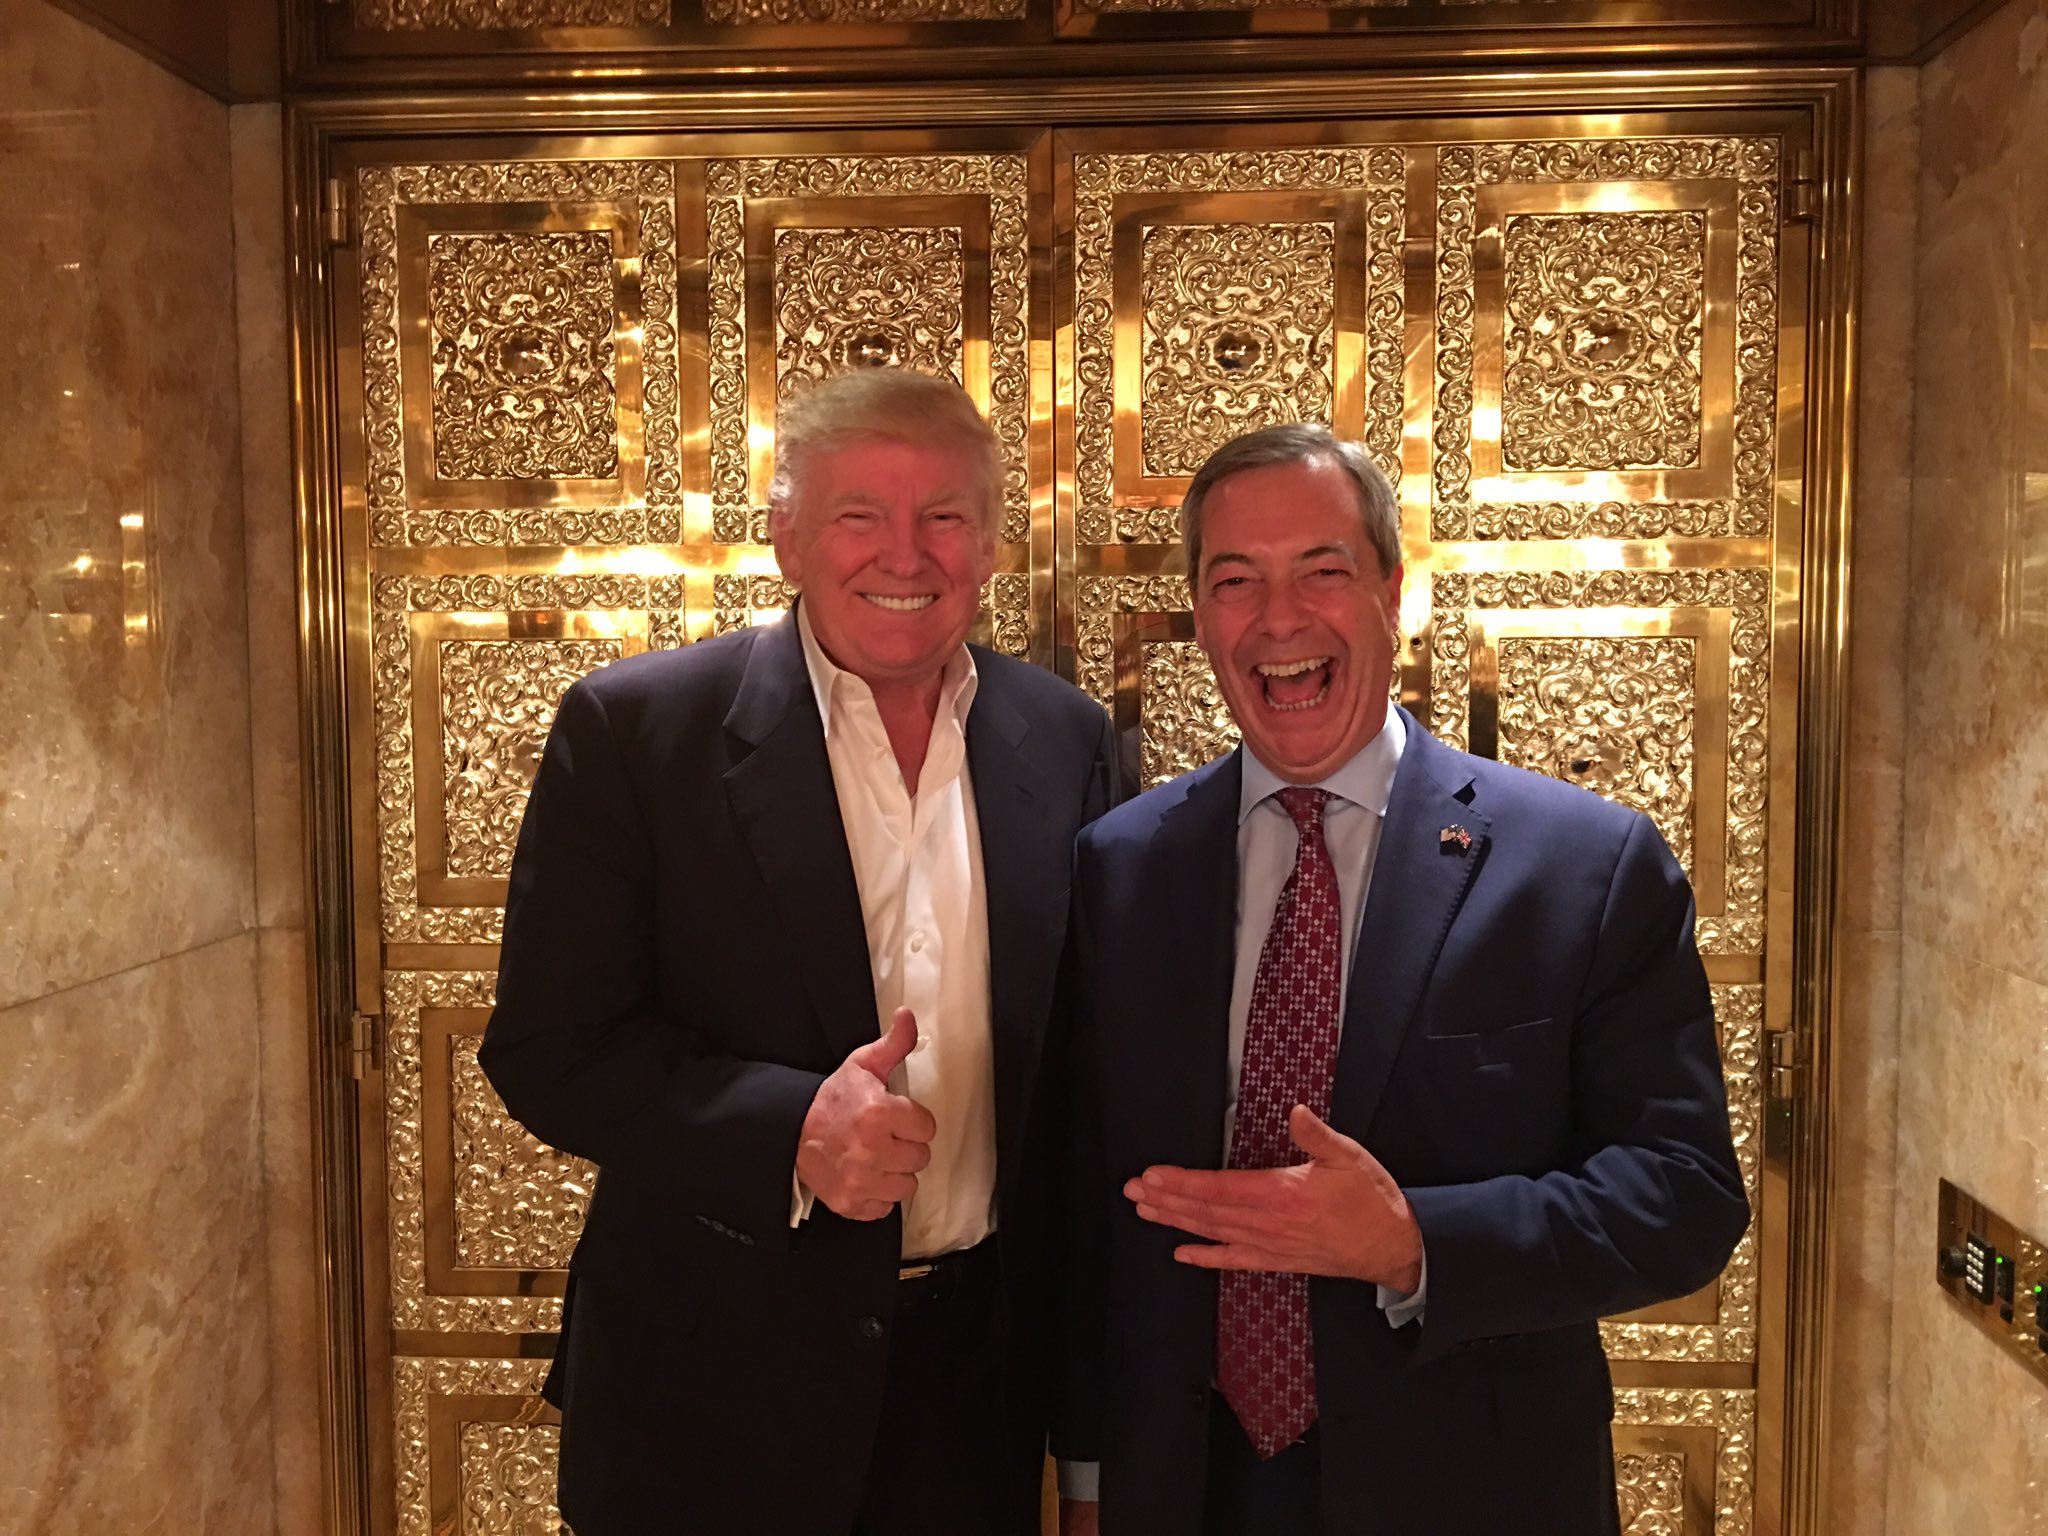 Vier Tage nach Trumps Wahlsieg im vergangenen November trafen sich er und Nigel  Farage von UKIP, der Rechten Großbritanniens.   2016 wikipedia.org, Nigel_Farage https://en.wikipedia.org/wiki/File:Nigel_Farage_after_Trump_Victory.jpg#/media/File:Nigel_Farage_after_Trump_Victory.jpg | CC BY-SA 4.0